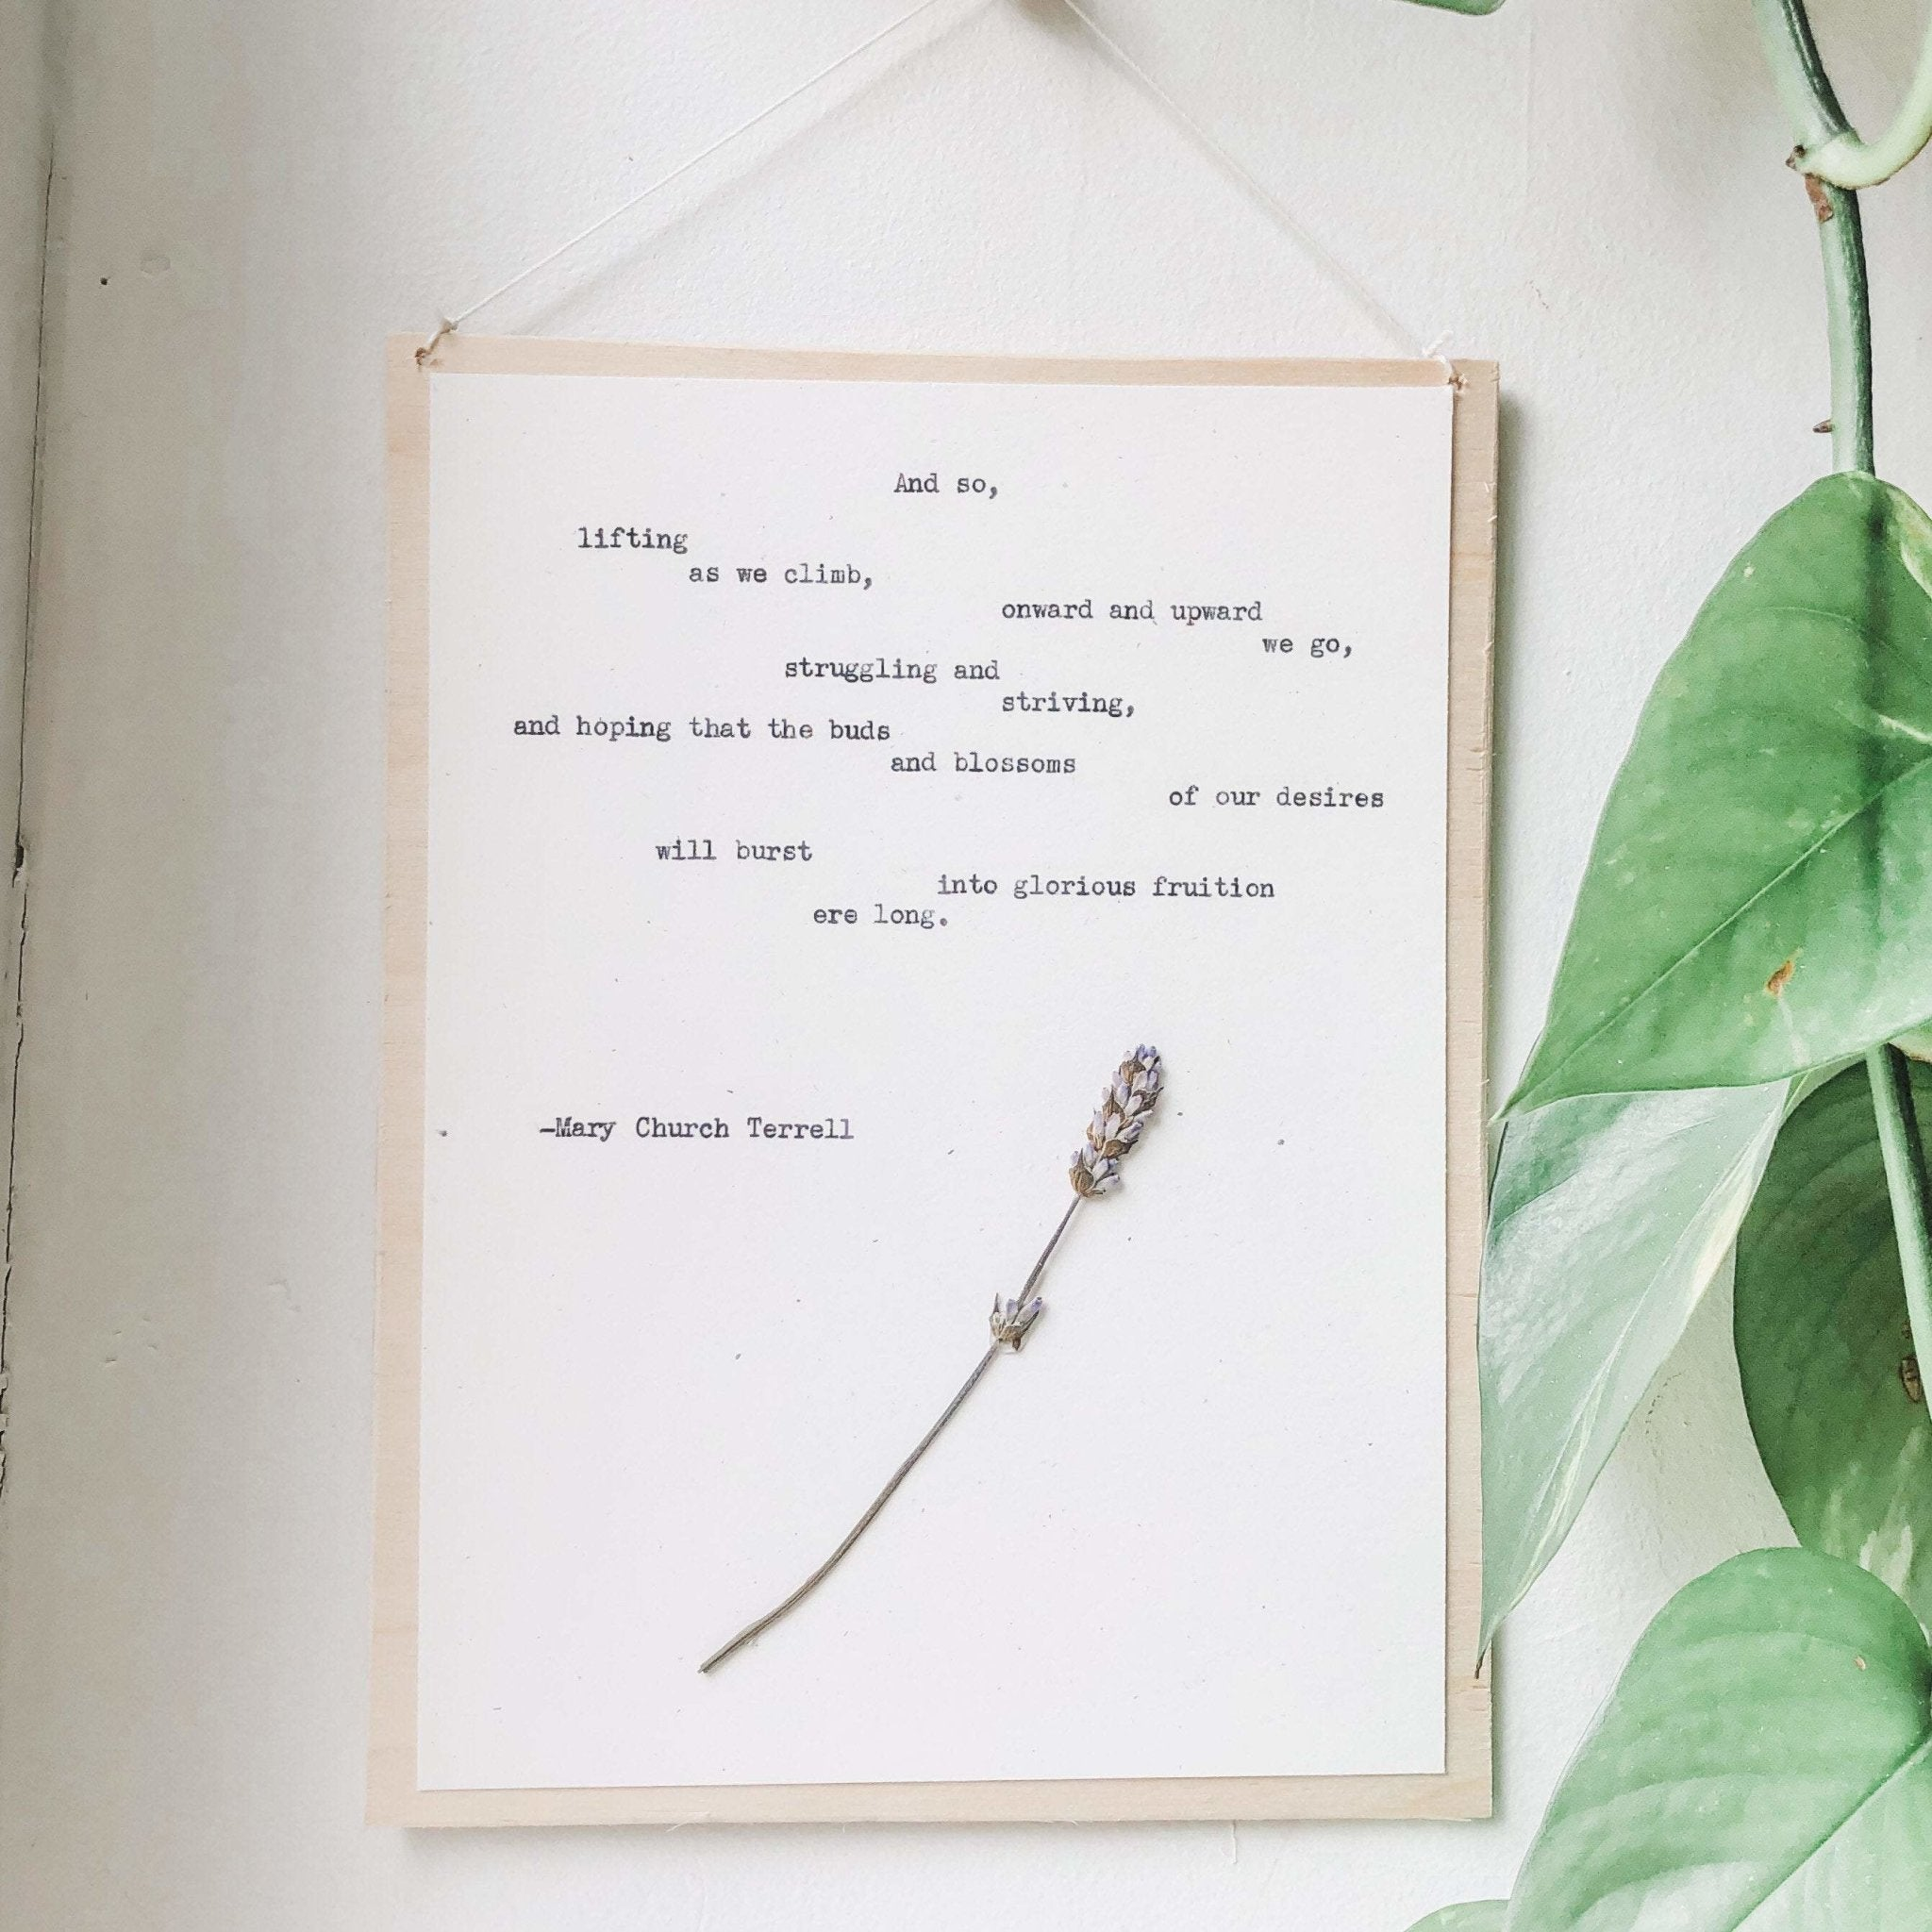 mary church terrell, onward and upward quote typed in typewriter font on white paper, mounted on birch wood and paired with a pressed flower. handmade décor by flora & phrase